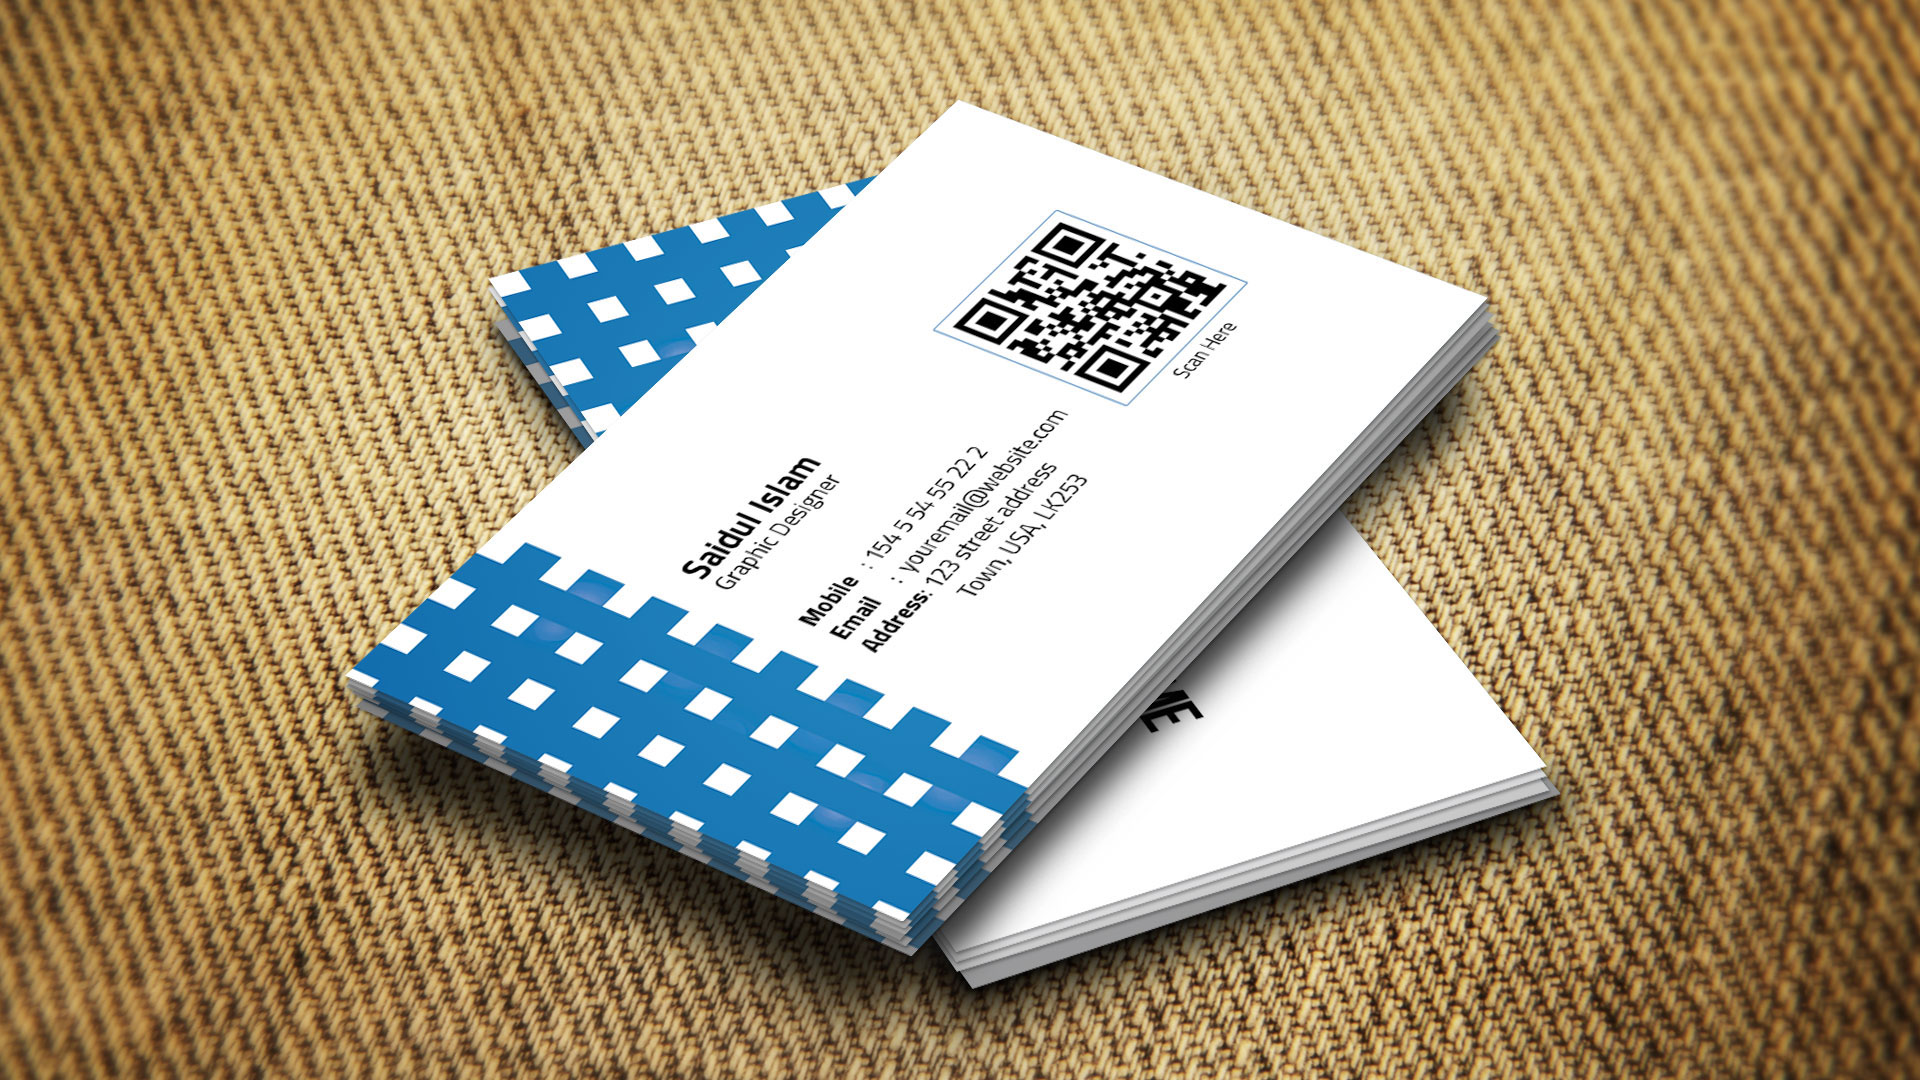 Creative Business Card Template Free On Behance - Single business card template